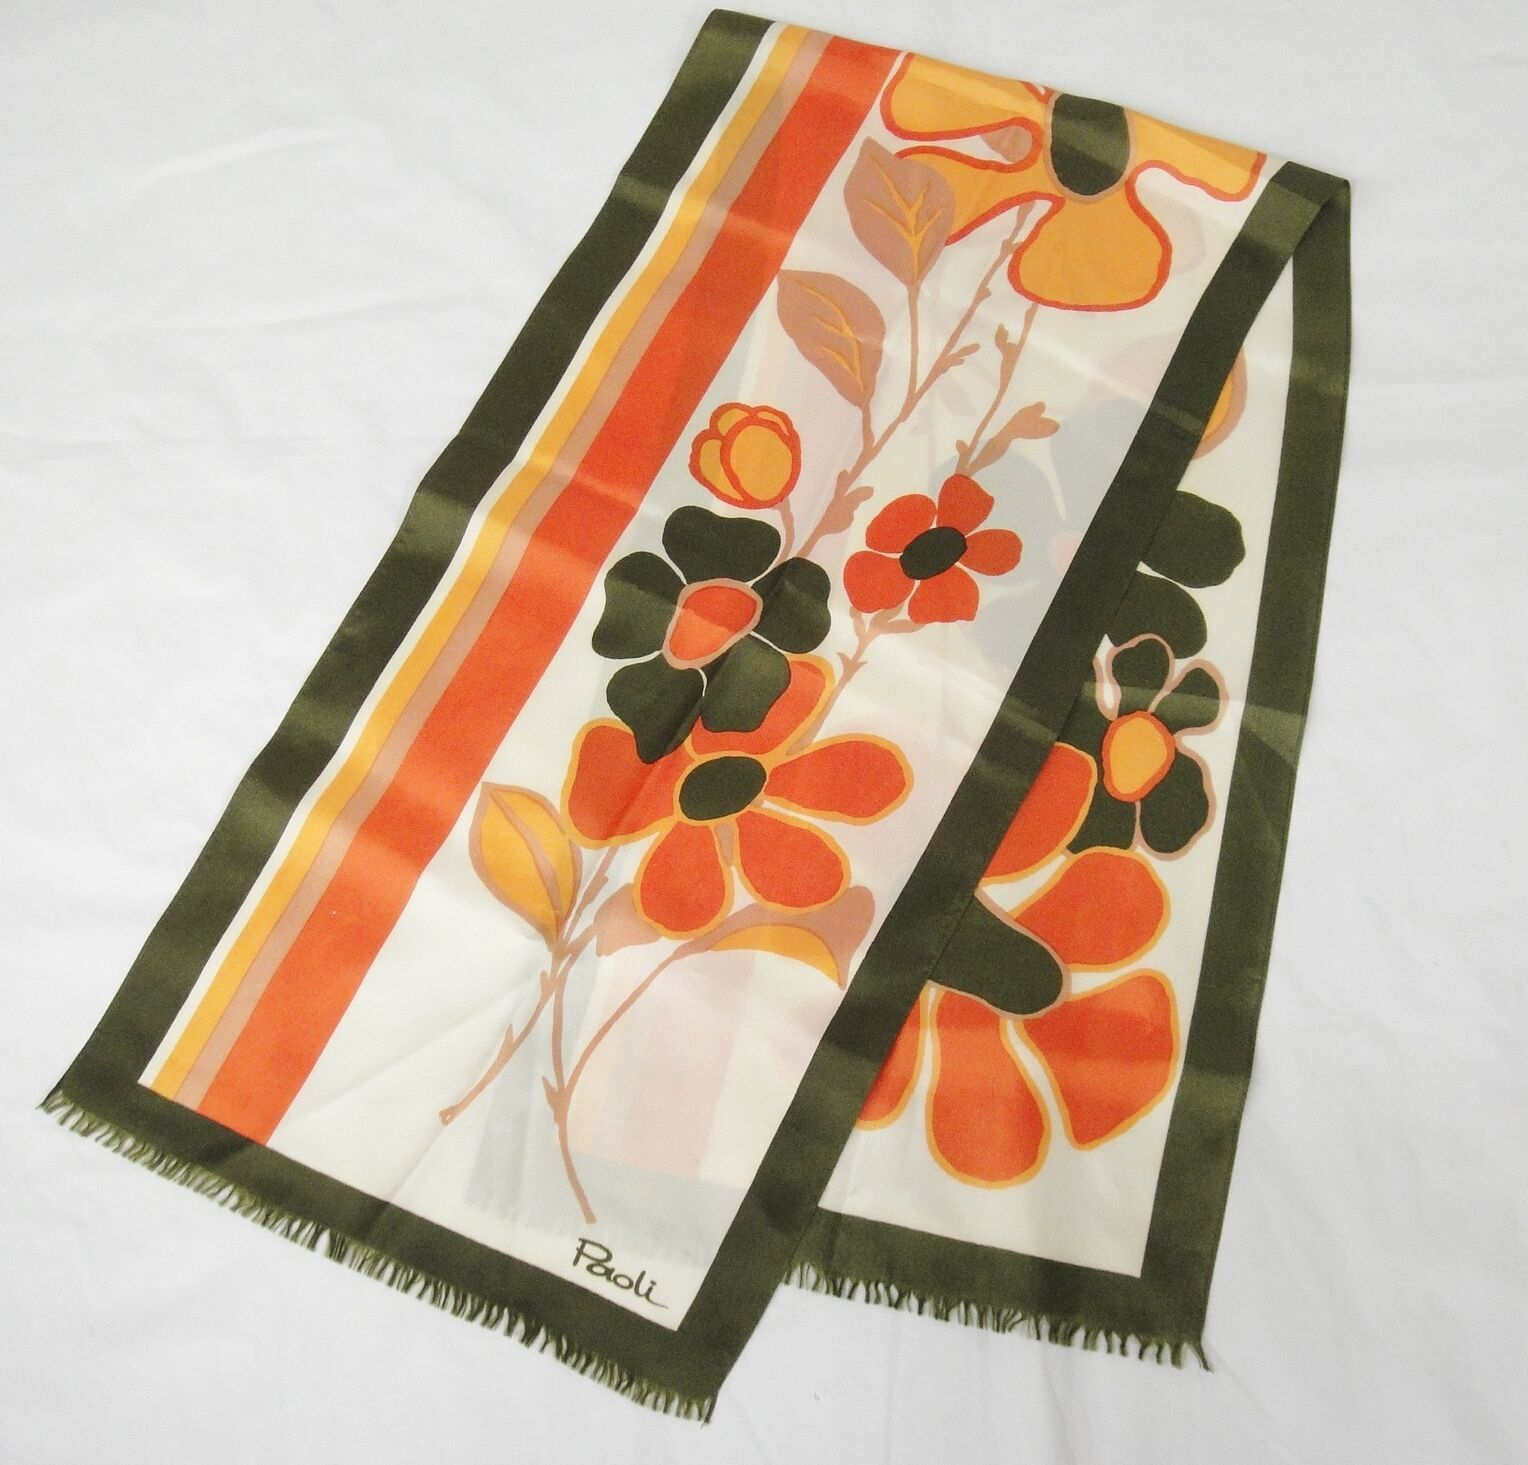 Primary image for Paoli Silk Scarf 52x13 Olive Green Orange and Brown Big Flowers 1970s Vintage